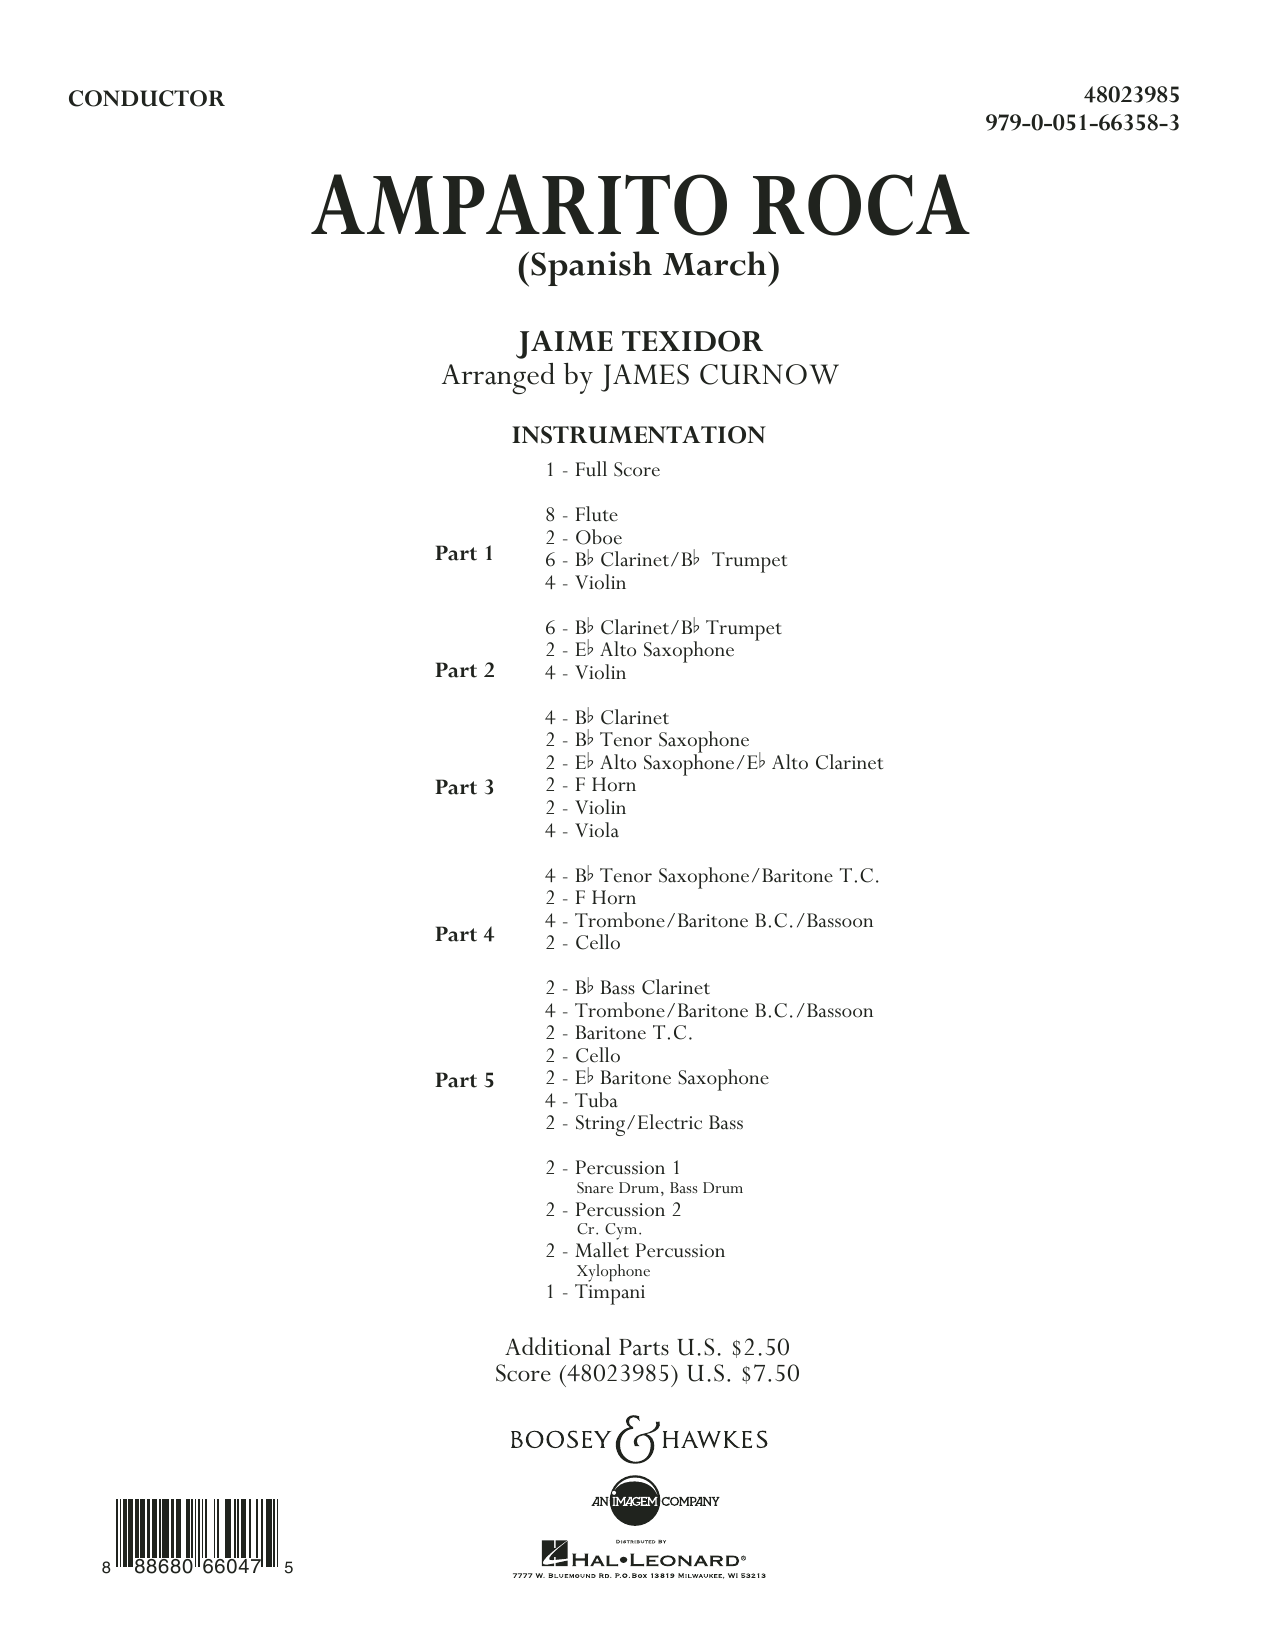 Jaime Texidor - Amparito Roca (Spanish March) - Conductor Score (Full Score)